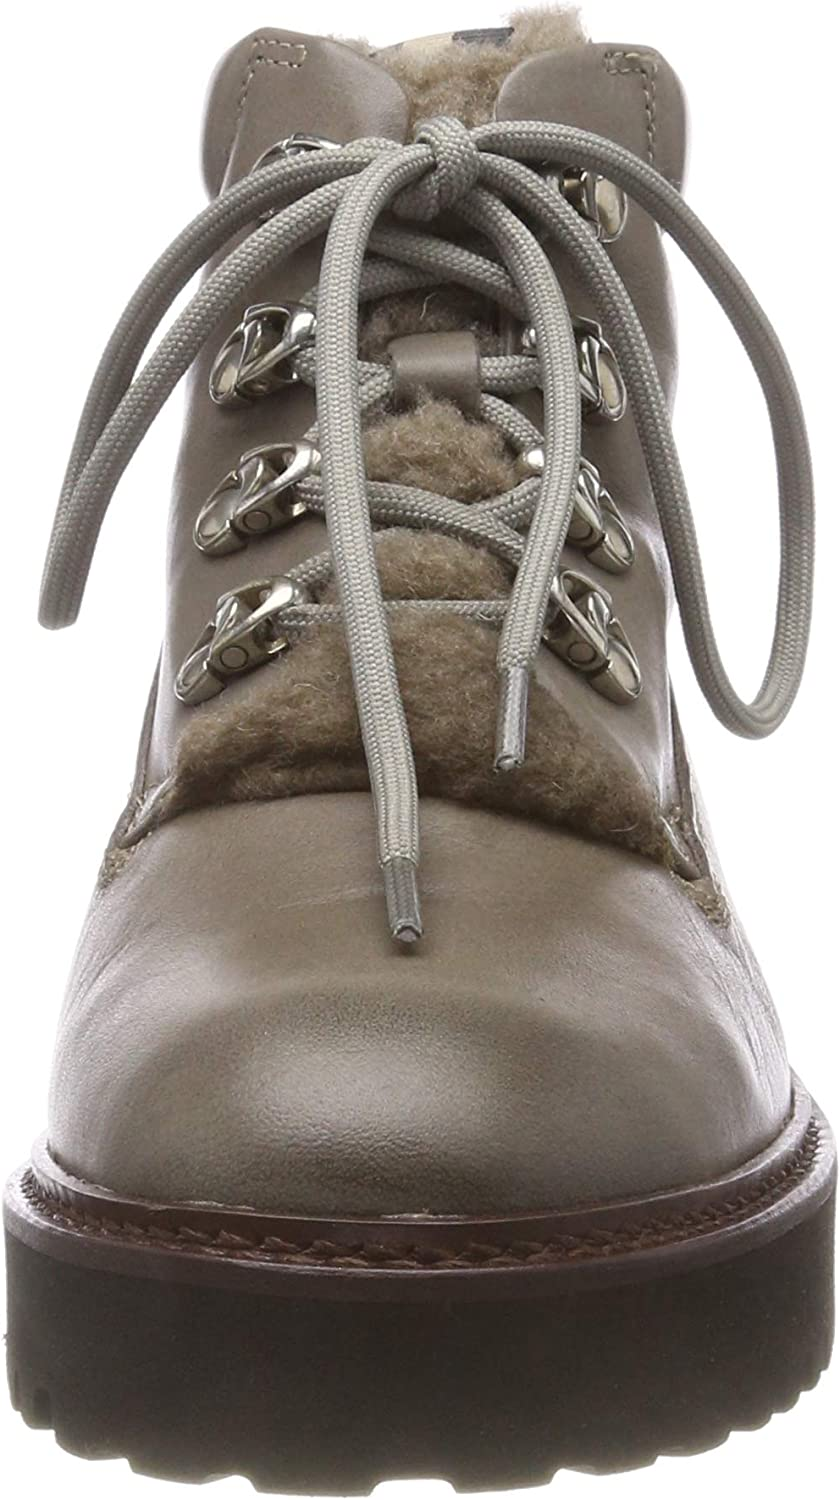 Marc O\'Polo Bootie, Chukka Boots Femme Beige Taupe 717